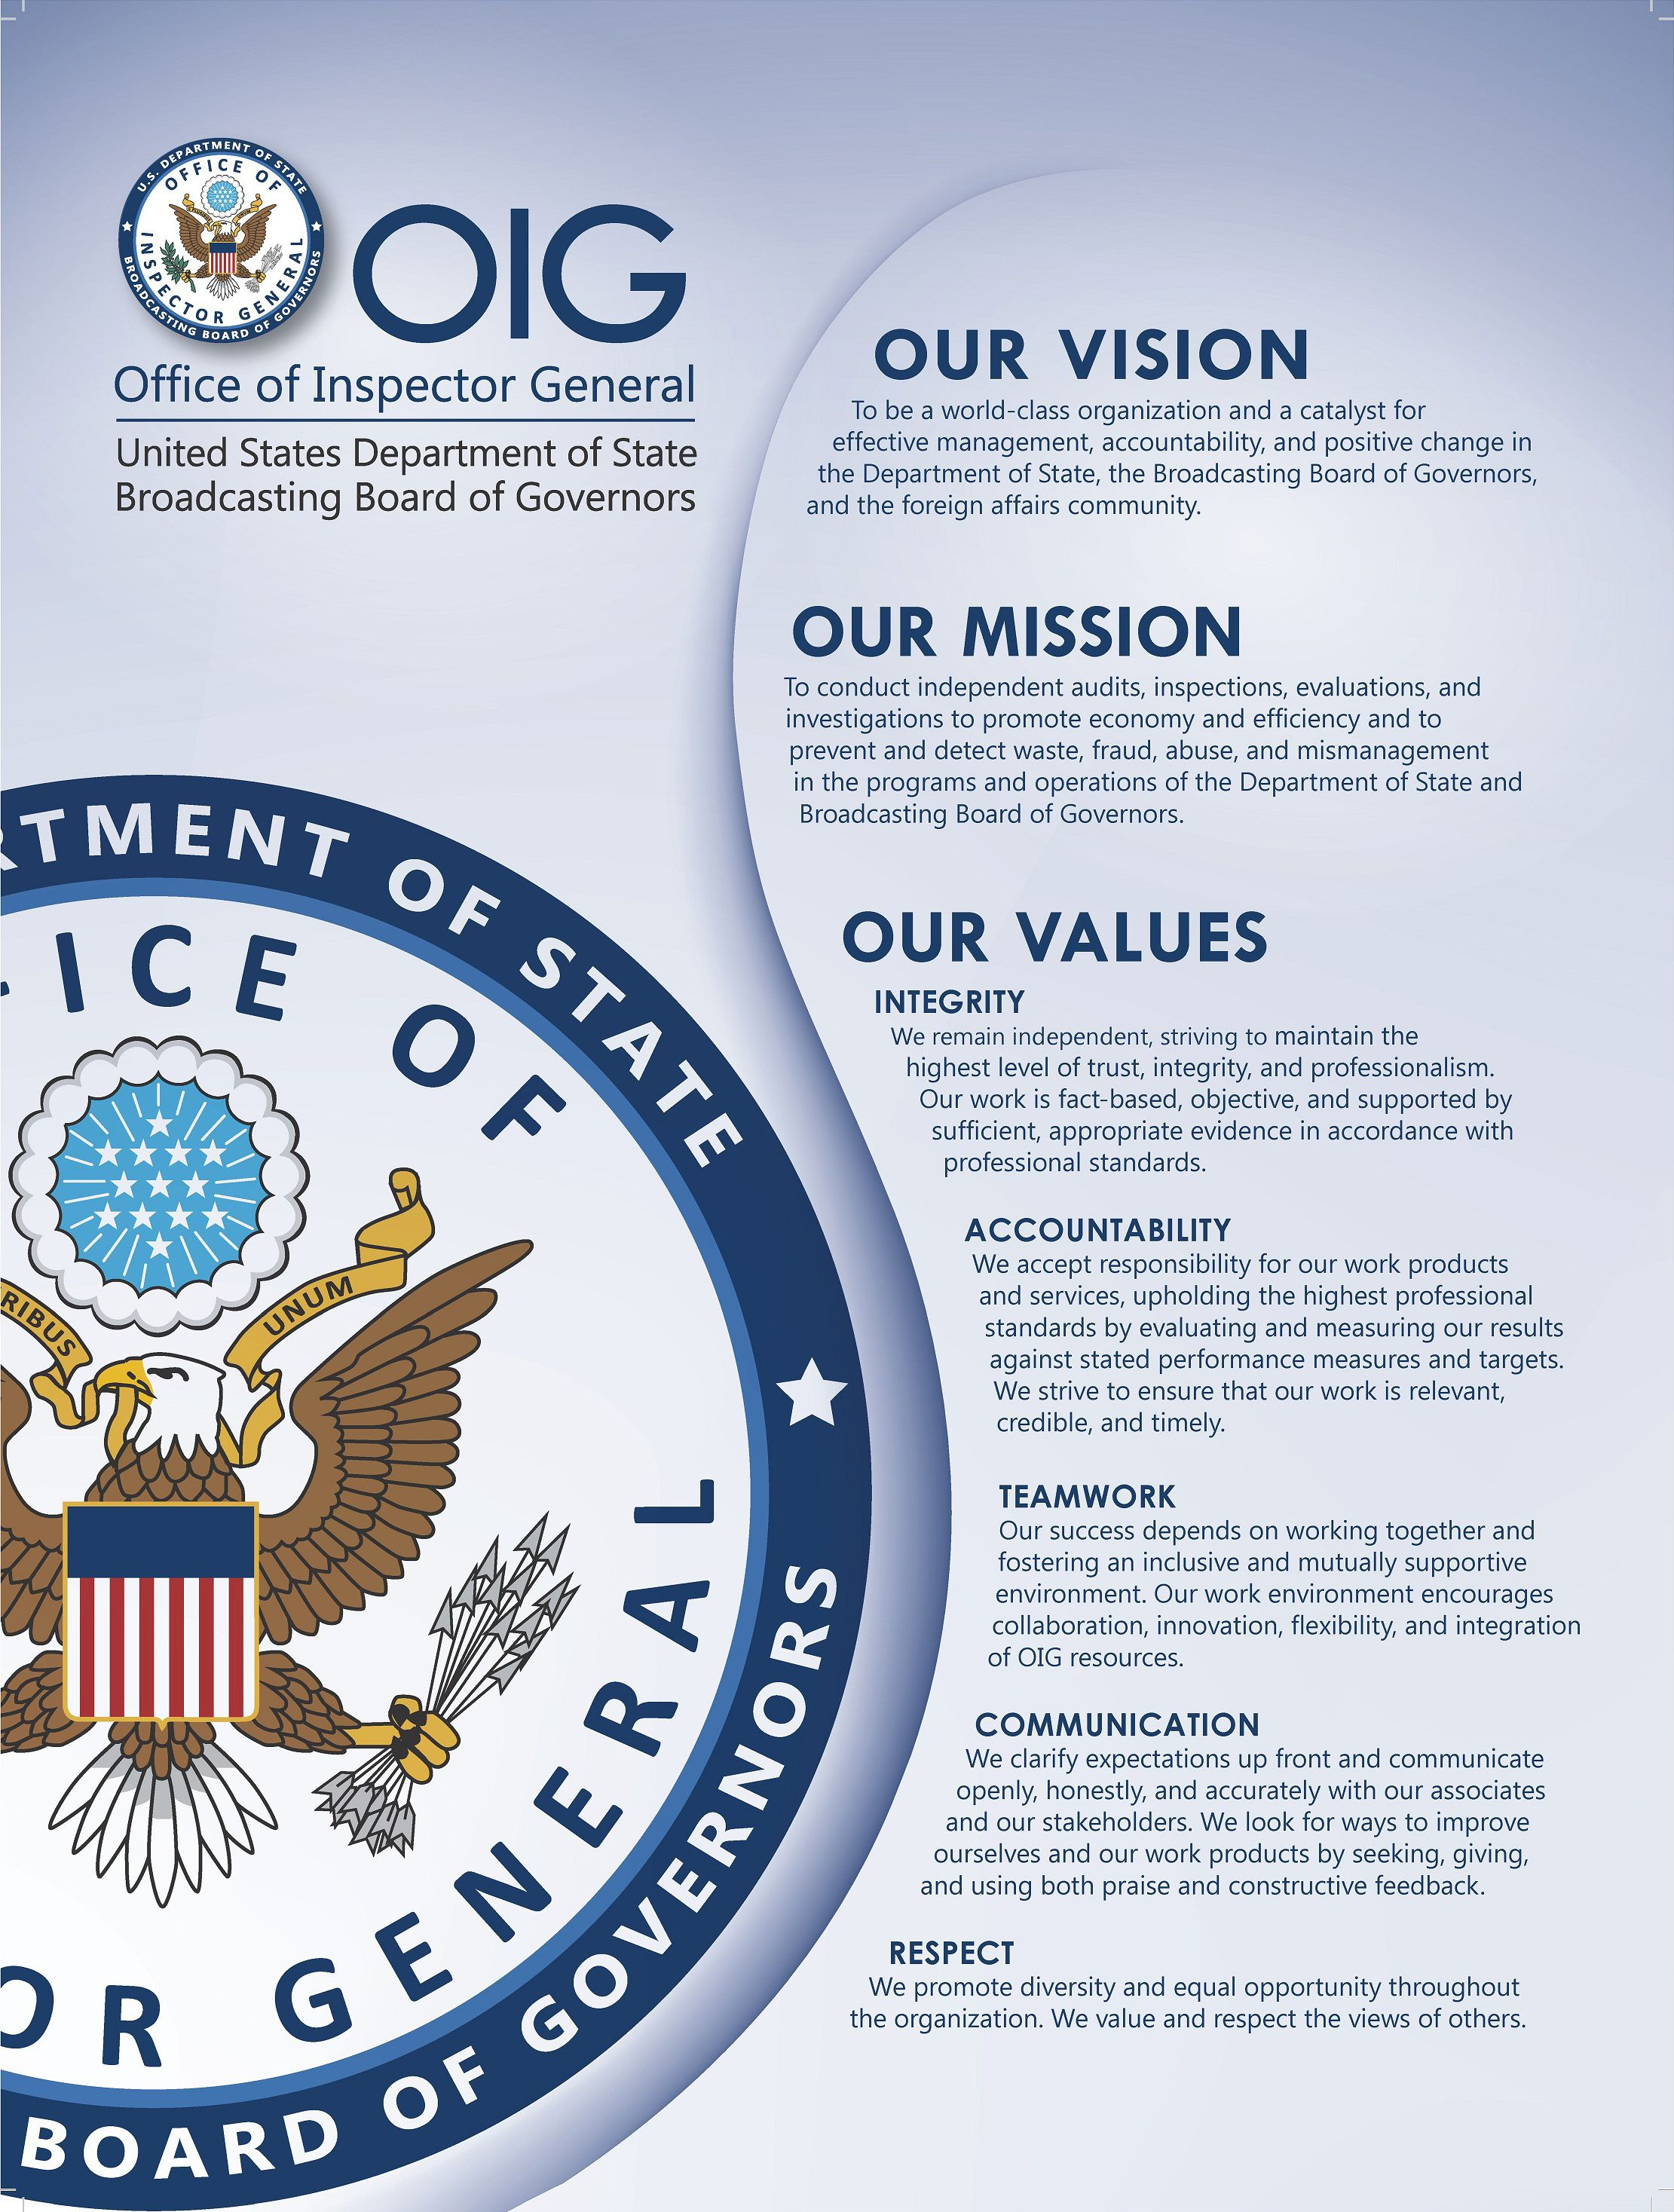 OIG: Vision, Mission, & Values | Company Value Samples ...